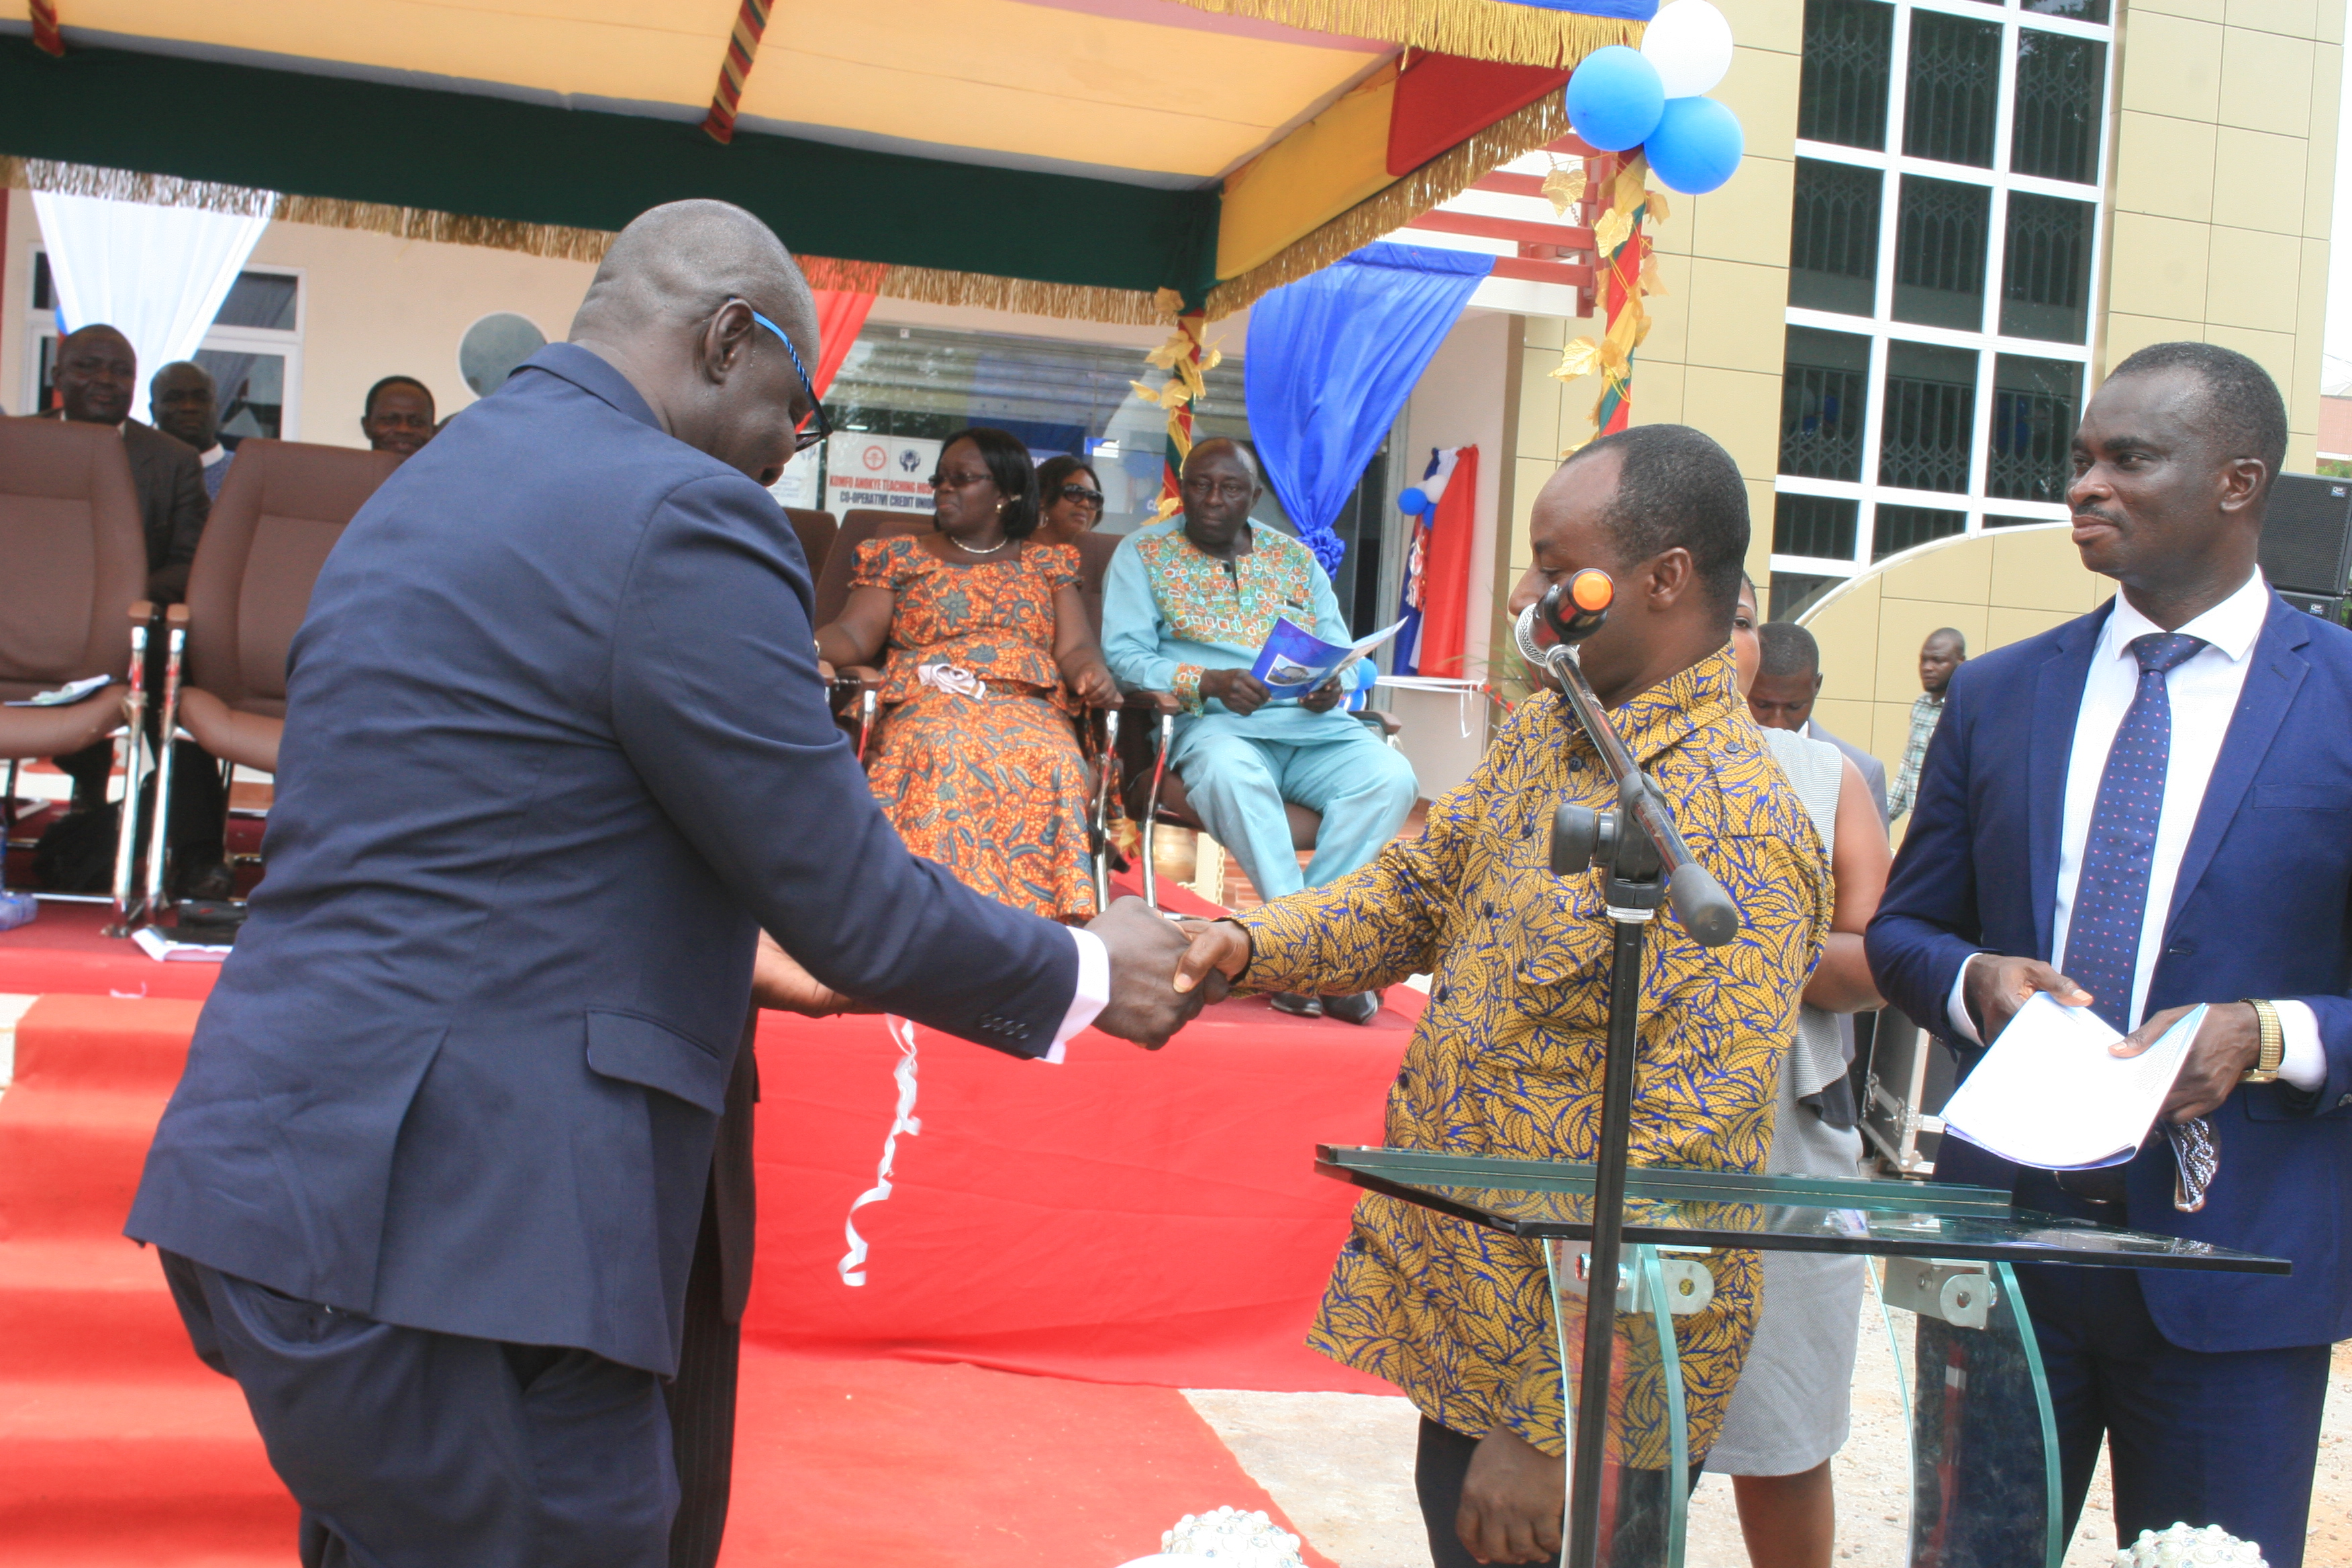 THE ESTATE MANAGER MR  FREDERICK OPPONG HANDING OVER THE OFFICE KEYS TO THE VICE CHAIRMAN DR FRANK ANKOBEA